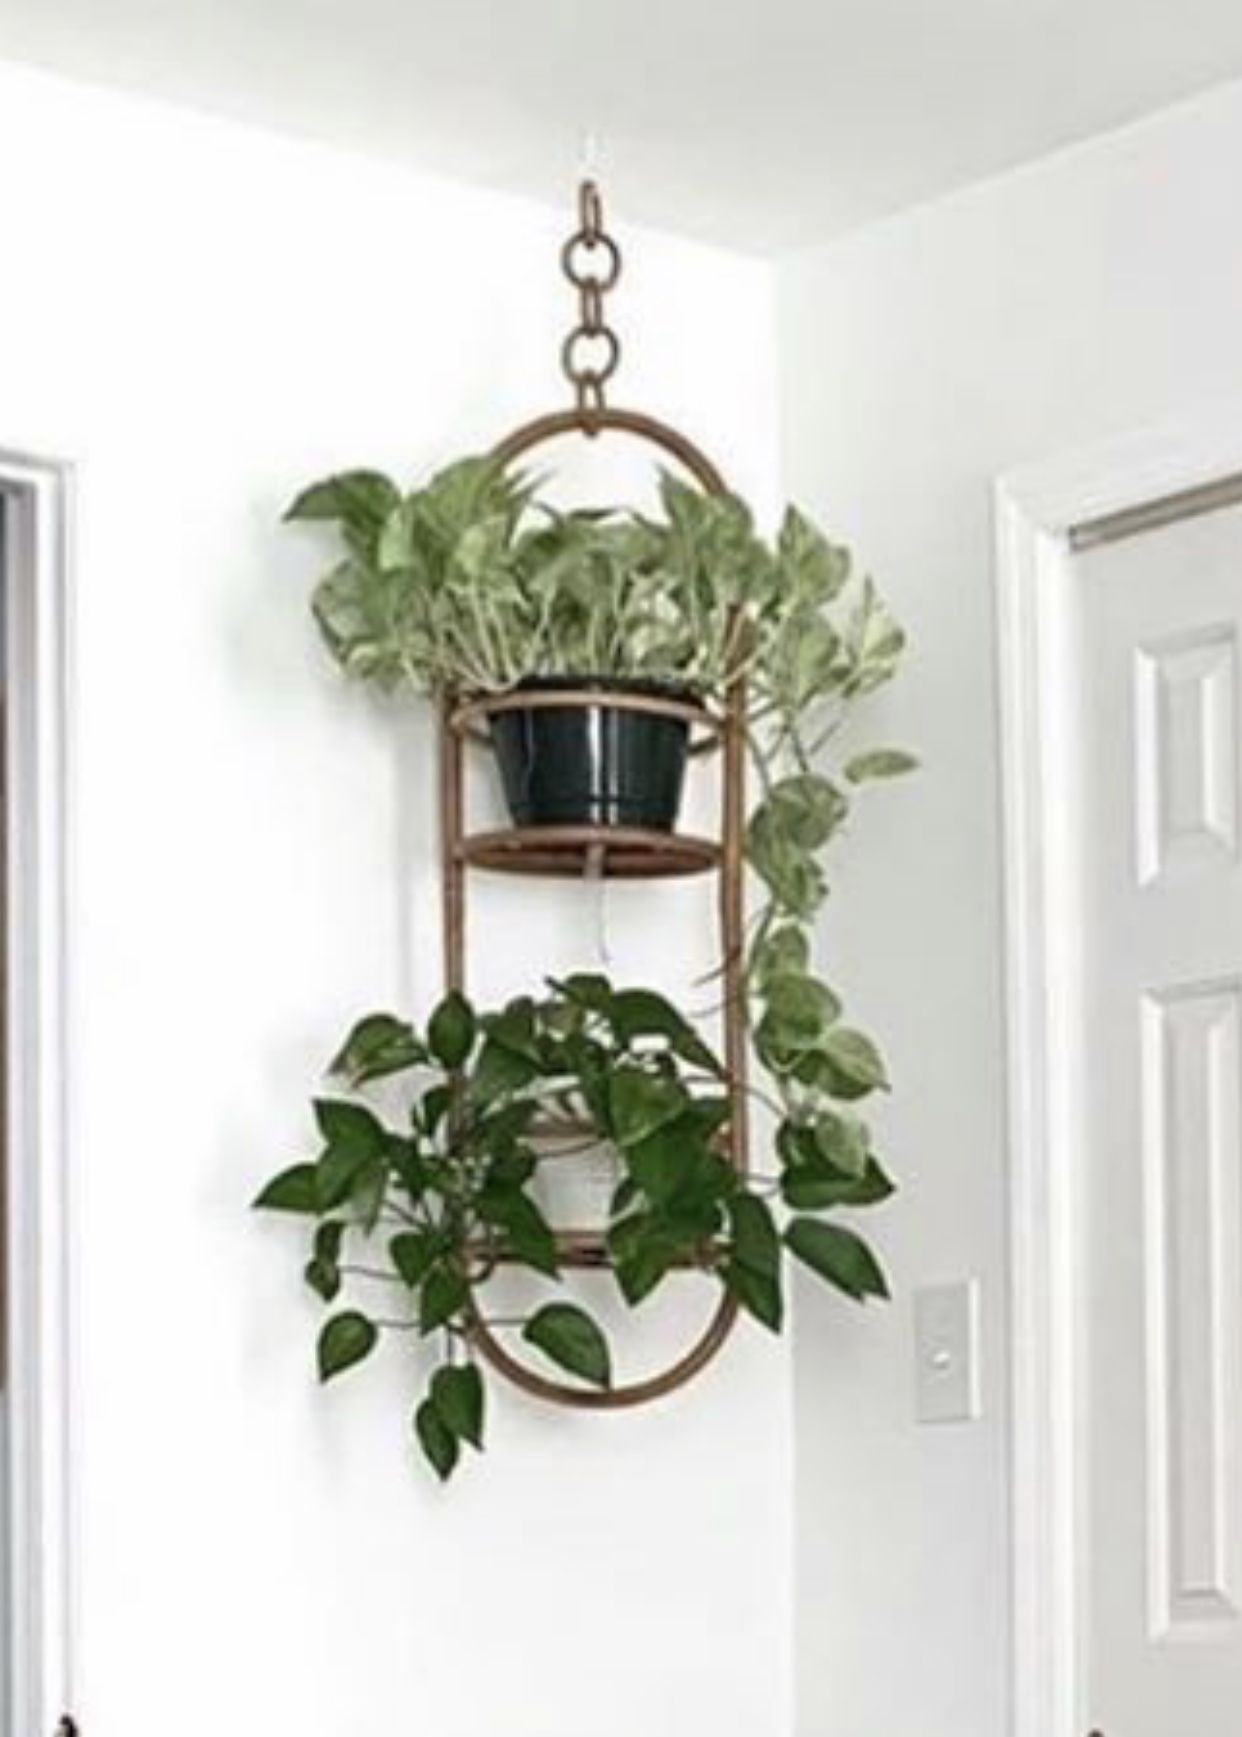 Platforms Make It So That You Can Still Have Drainage Trays Under The Pots Hanging Planters Planters Planter Pots